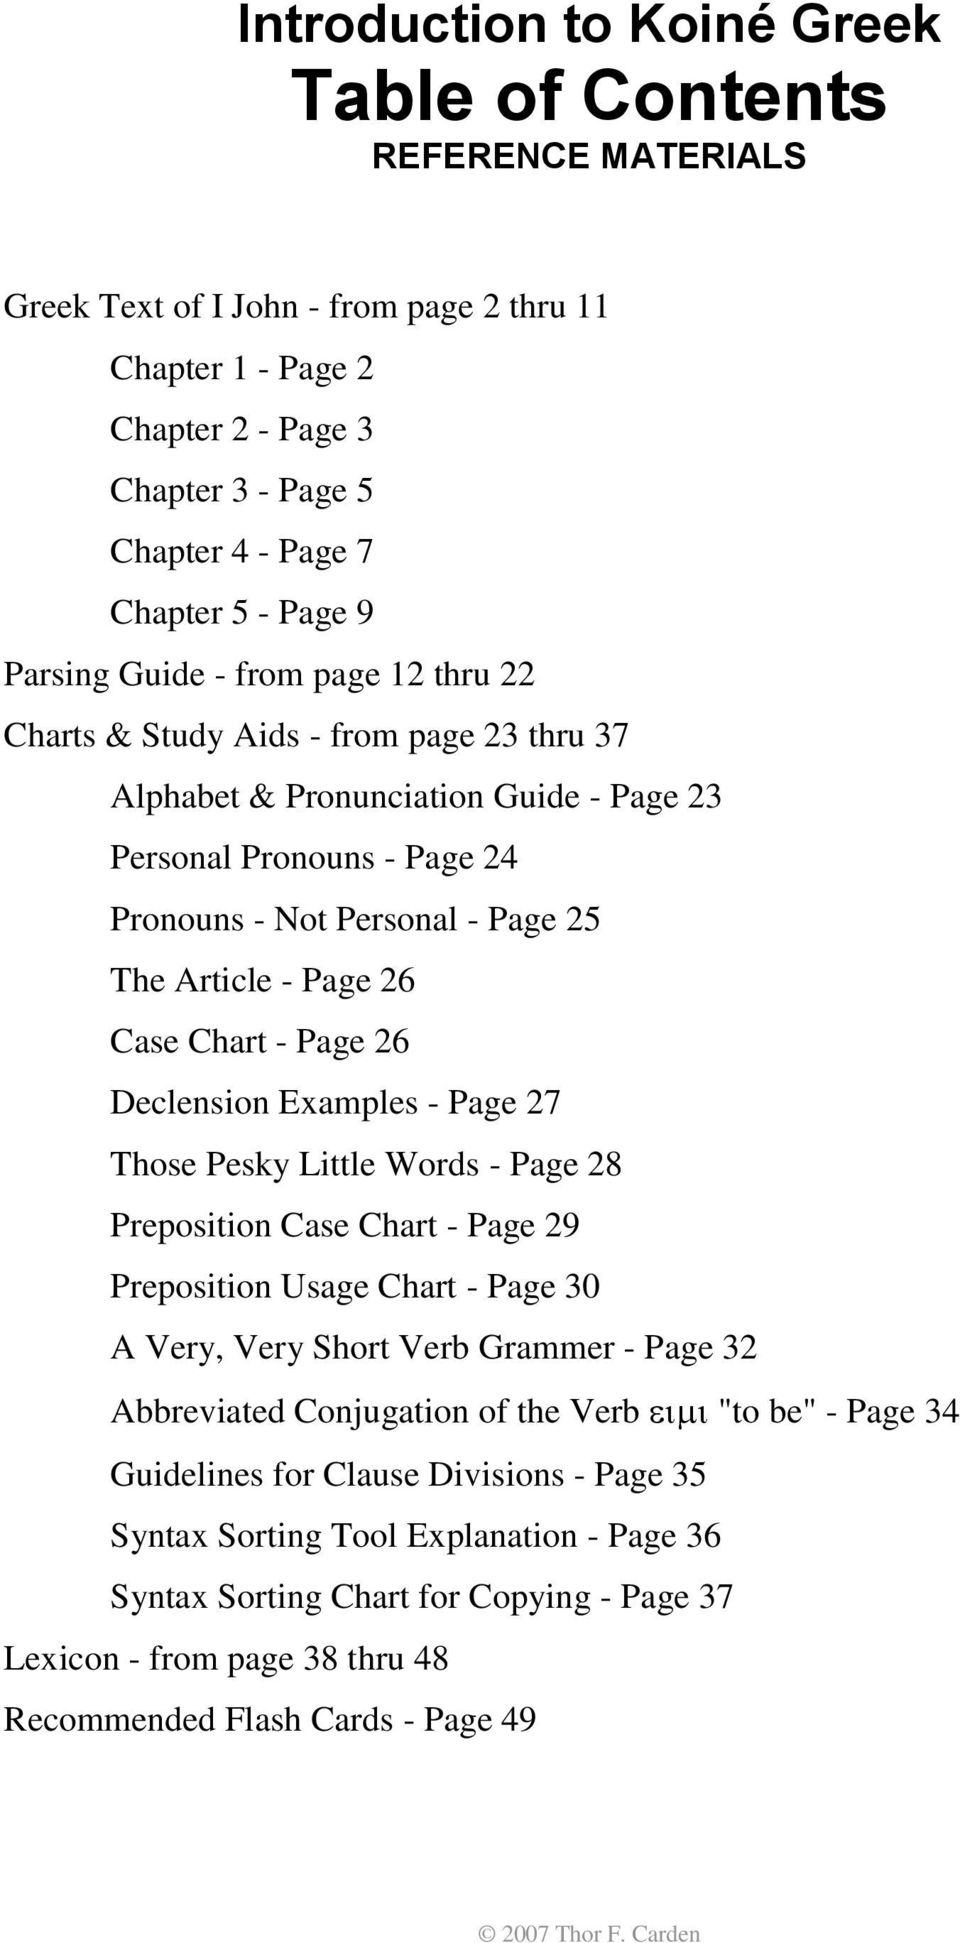 Article - Page 26 Case Chart - Page 26 Declension Examples - Page 27 Those Pesky Little Words - Page 28 Preposition Case Chart - Page 29 Preposition Usage Chart - Page 30 A Very, Very Short Verb